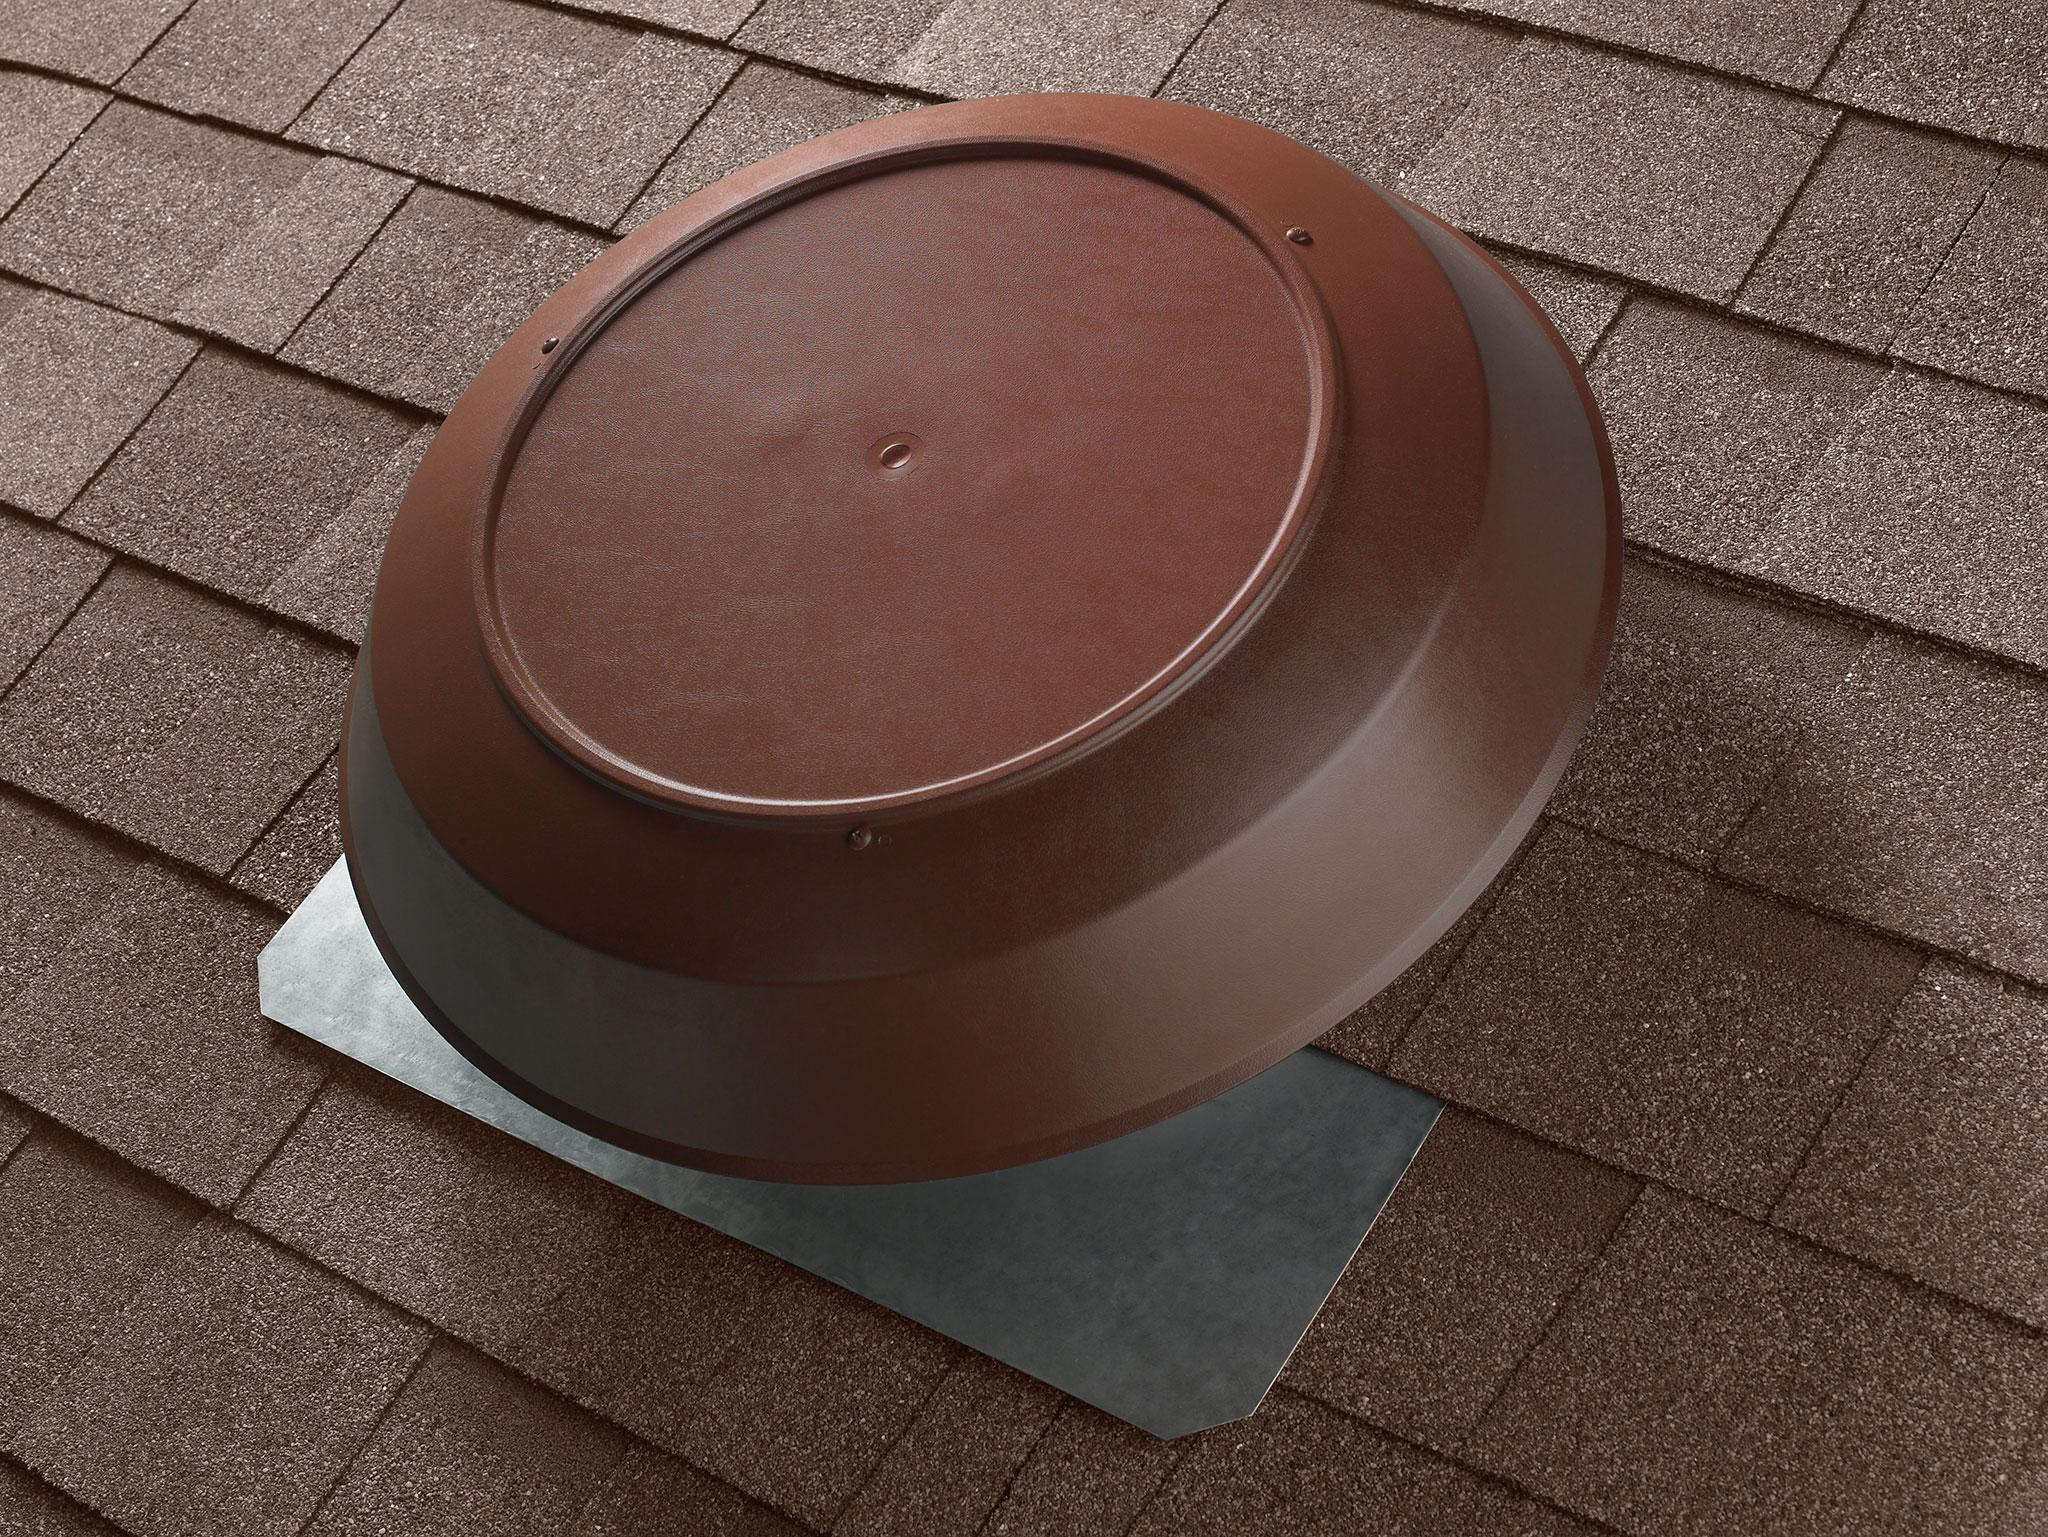 Broan 350b Roof Mount 120 Volt Powered Attic Ventilator 1050 Cfm Electrical Wiring Diagrams 12 Brown Dome